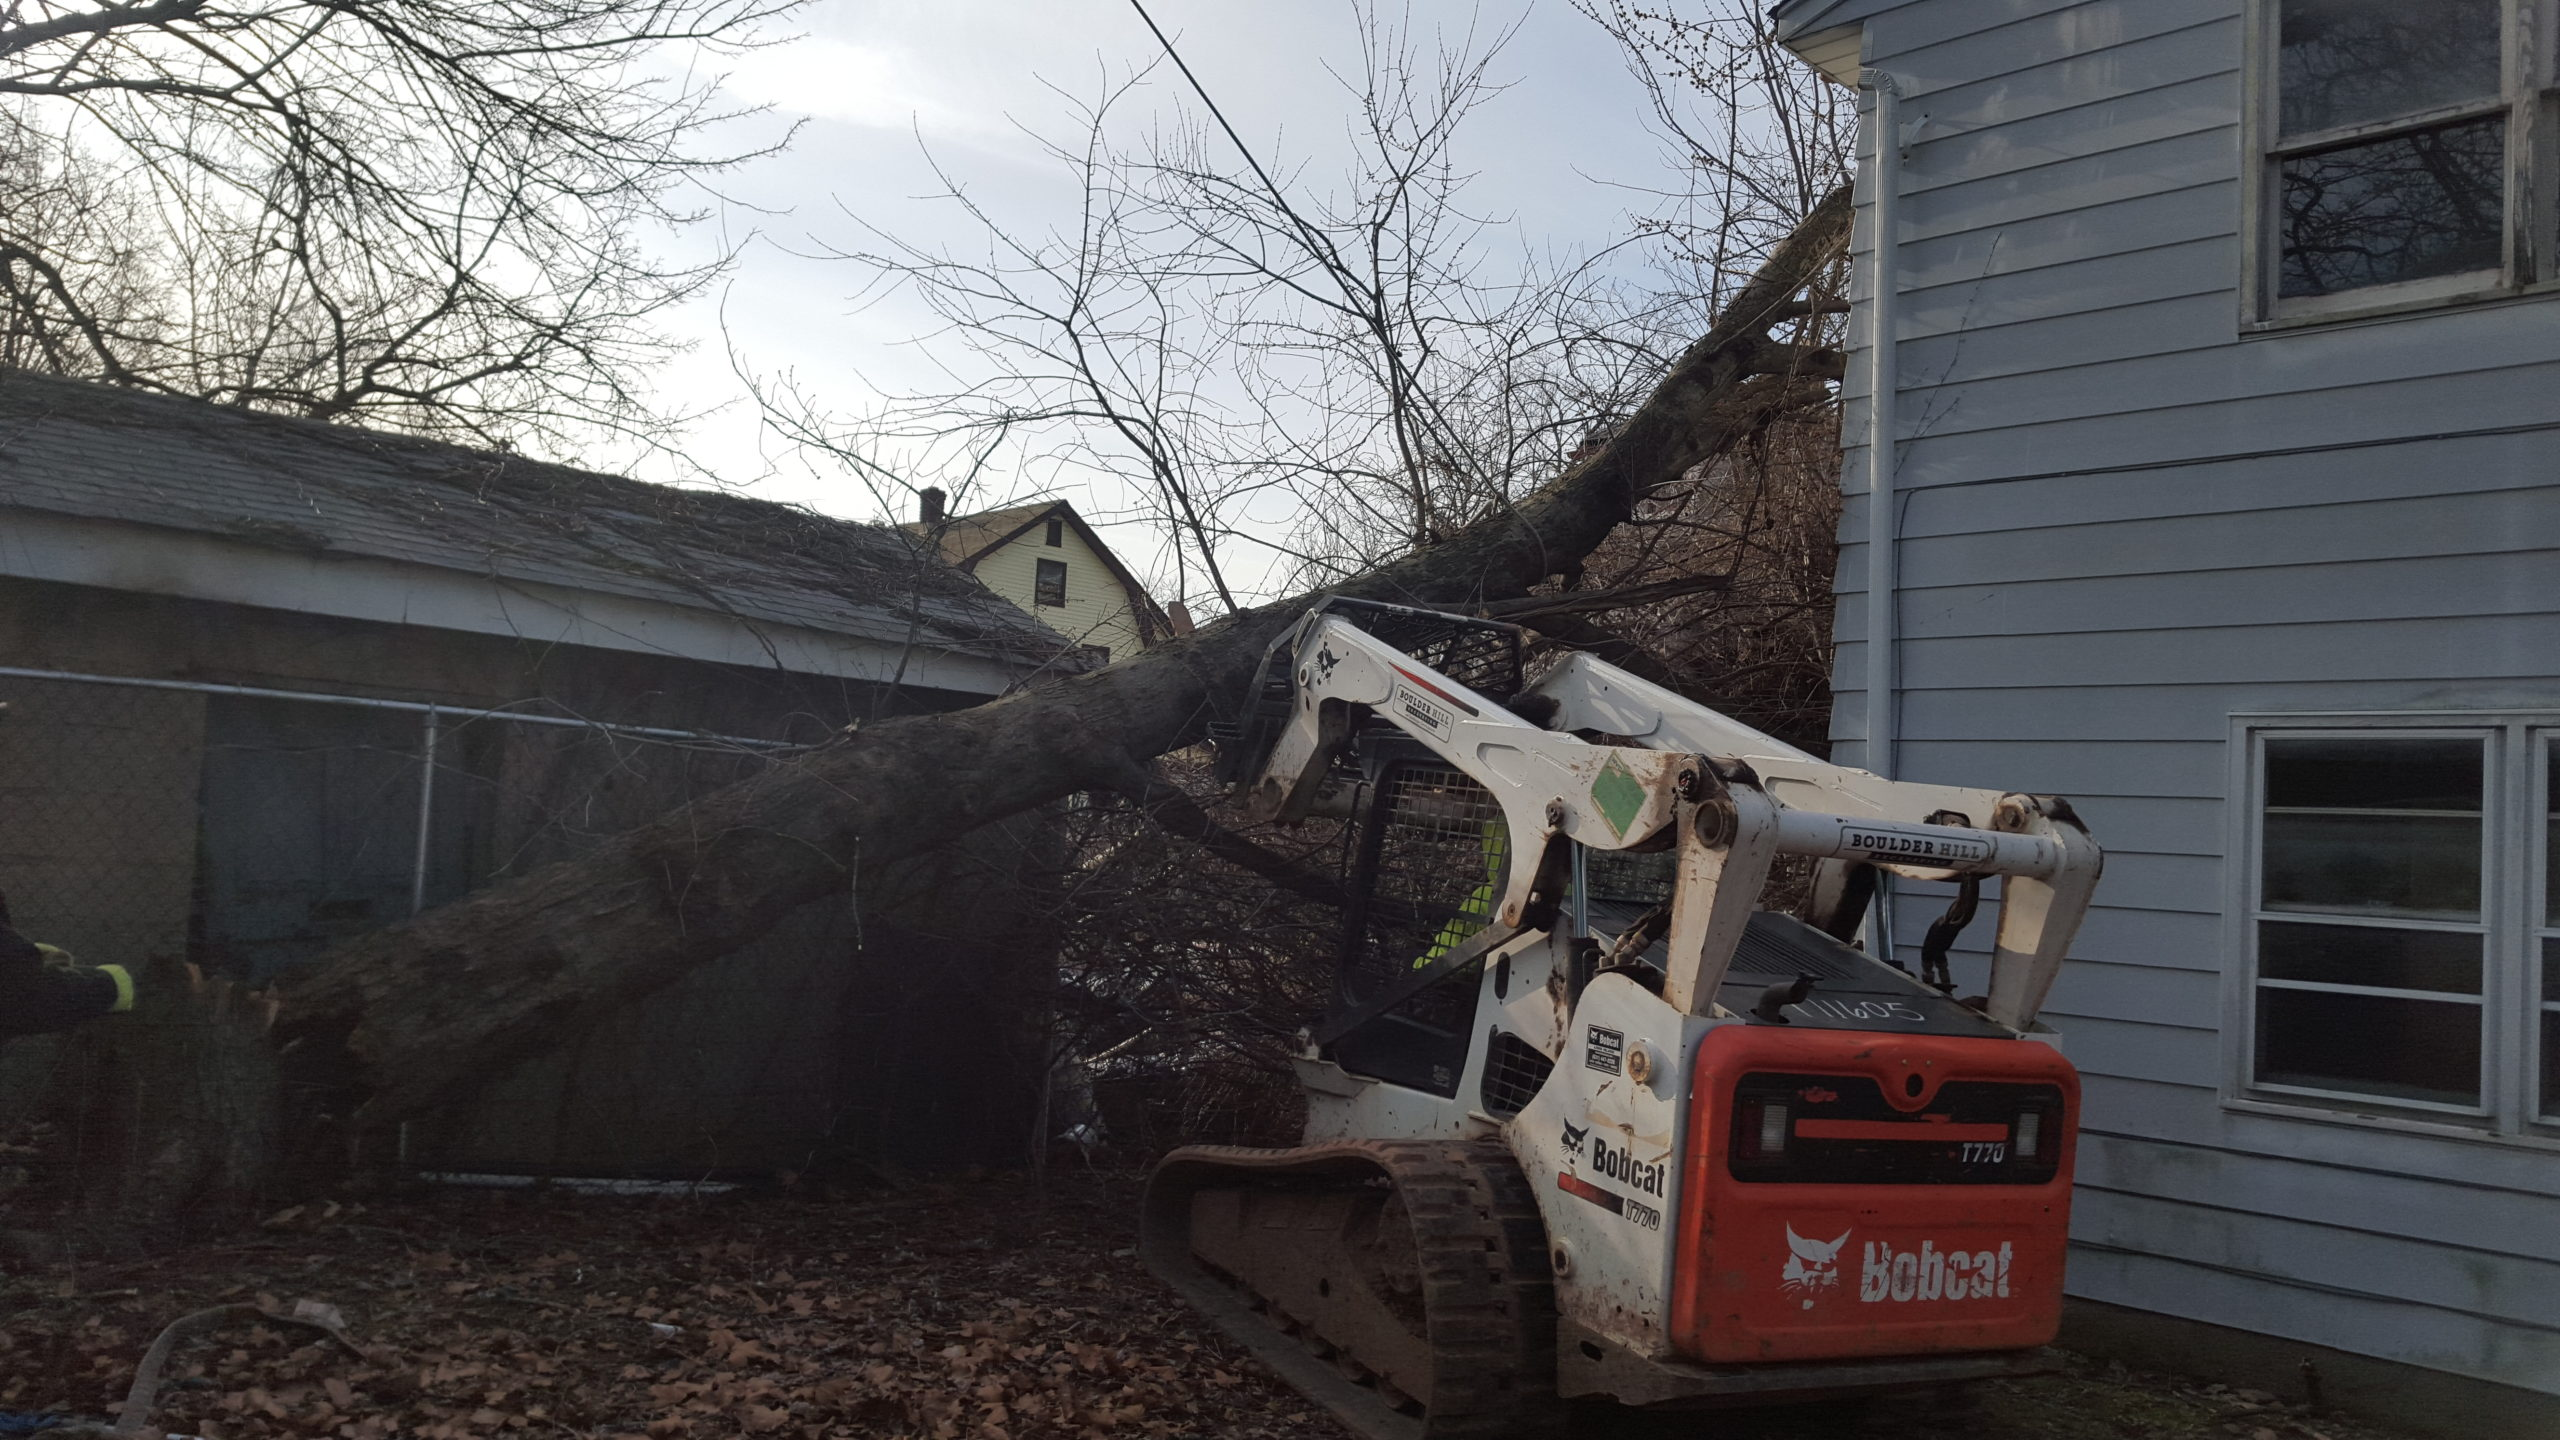 Removing Fallen Tree - Storm Damage Services NJ